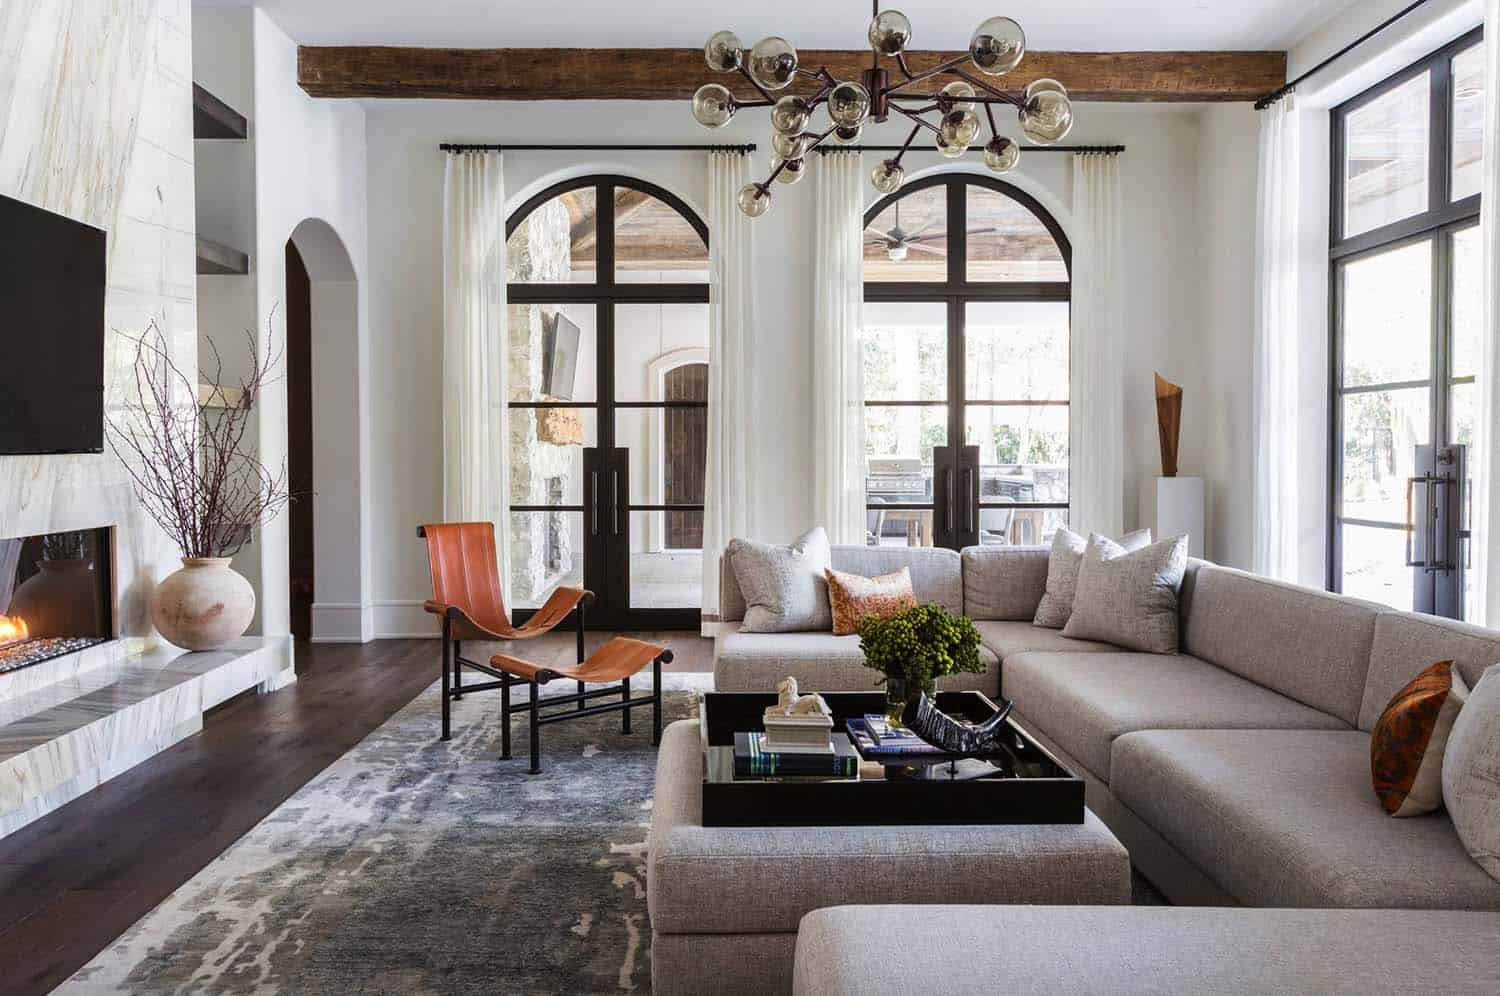 Mediterranean style Texan home with light-flooded interiors